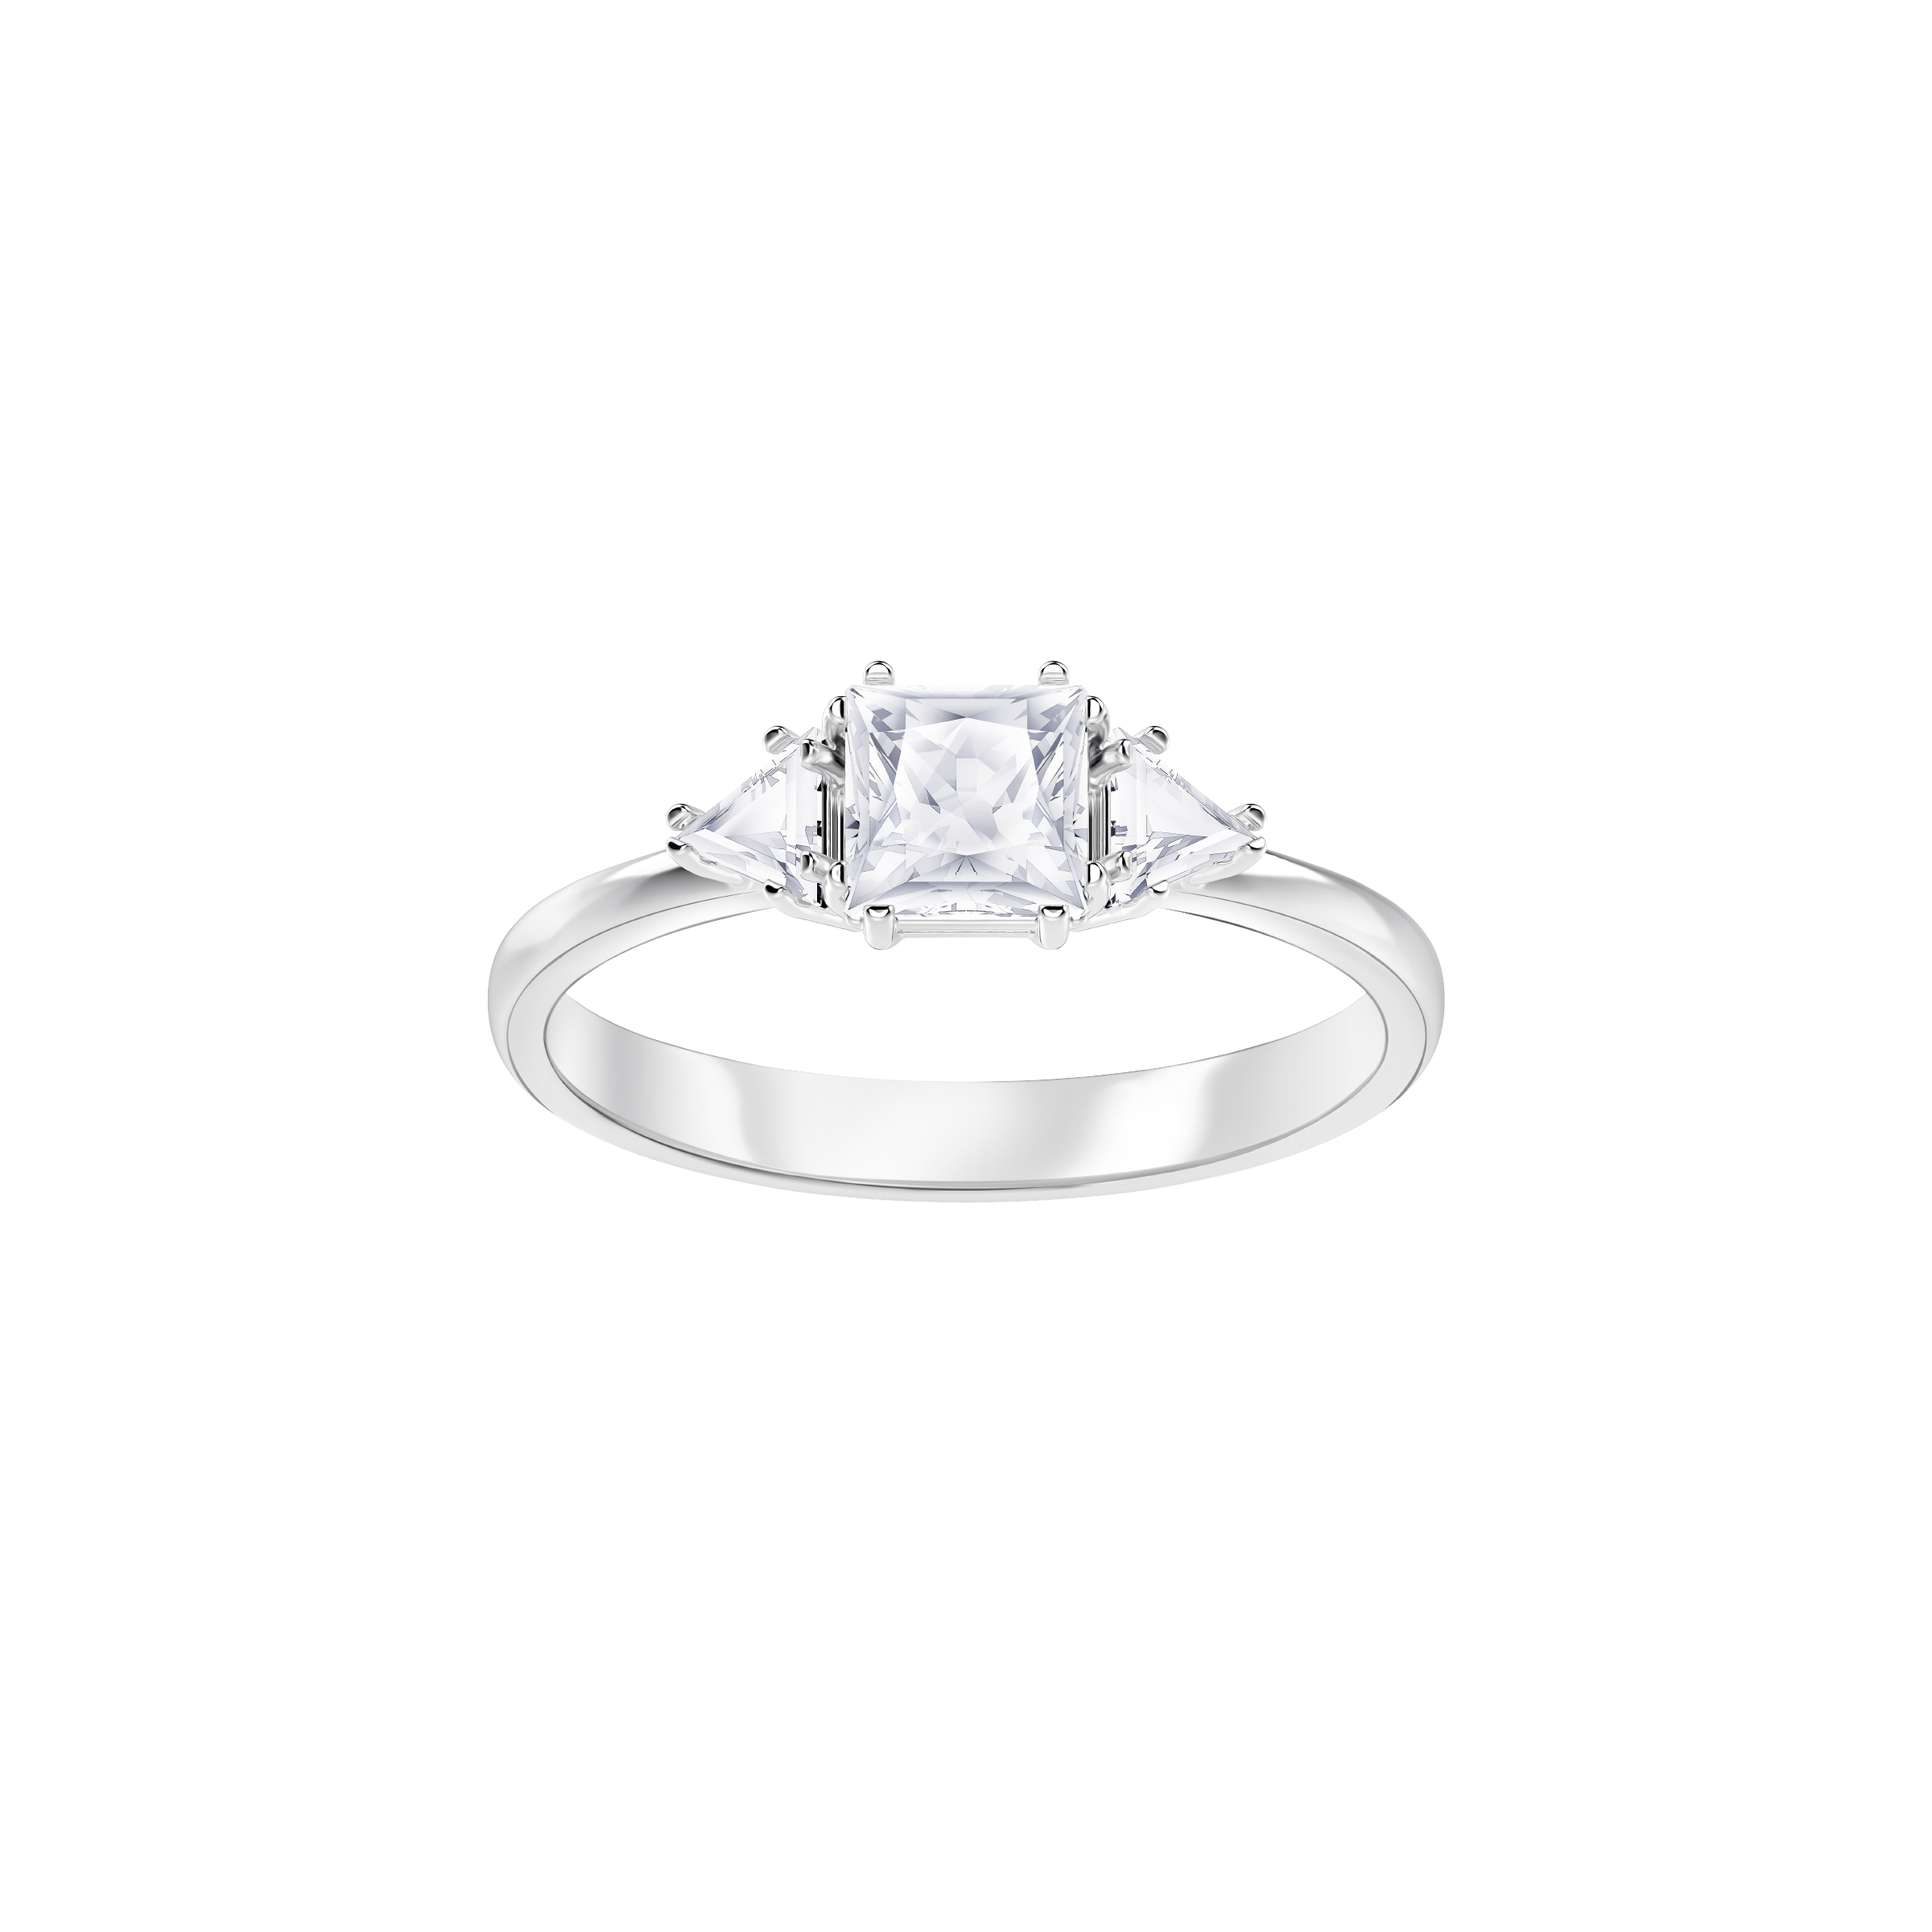 Attract Trilogy Ring, White, Rhodium Plating